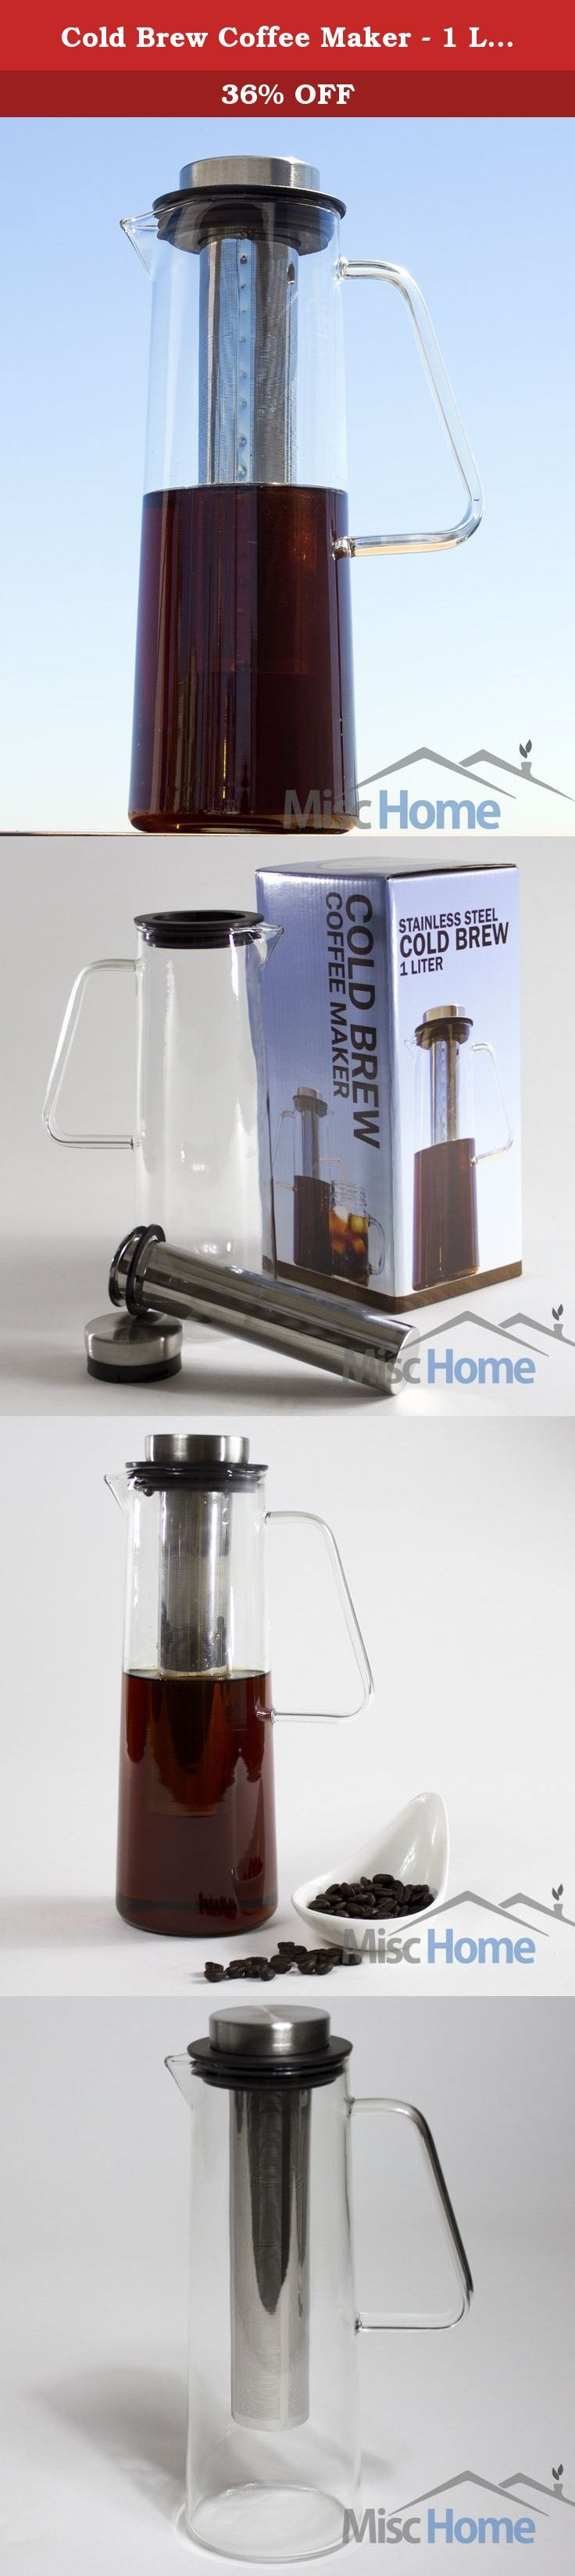 Cold Brew Coffee Maker - 1 Liter Iced Coffee Maker -Borosilicate Cold Brew Pitcher with Removable Laser Cut Stainless Steel Cold Brew Coffee Filter. MiscHome is Proud to Present Our Cold Brew Coffee Maker/Serving Pitcher We Now Have an Excellent Cold Brew Kit for Home! Cold brew coffee is becoming a quick favorite amongst coffee drinkers. Cold brew takes more time to make, but rewards patience with a smoother, sweeter, less acidic coffee than your traditionally brewed hot or iced coffees....